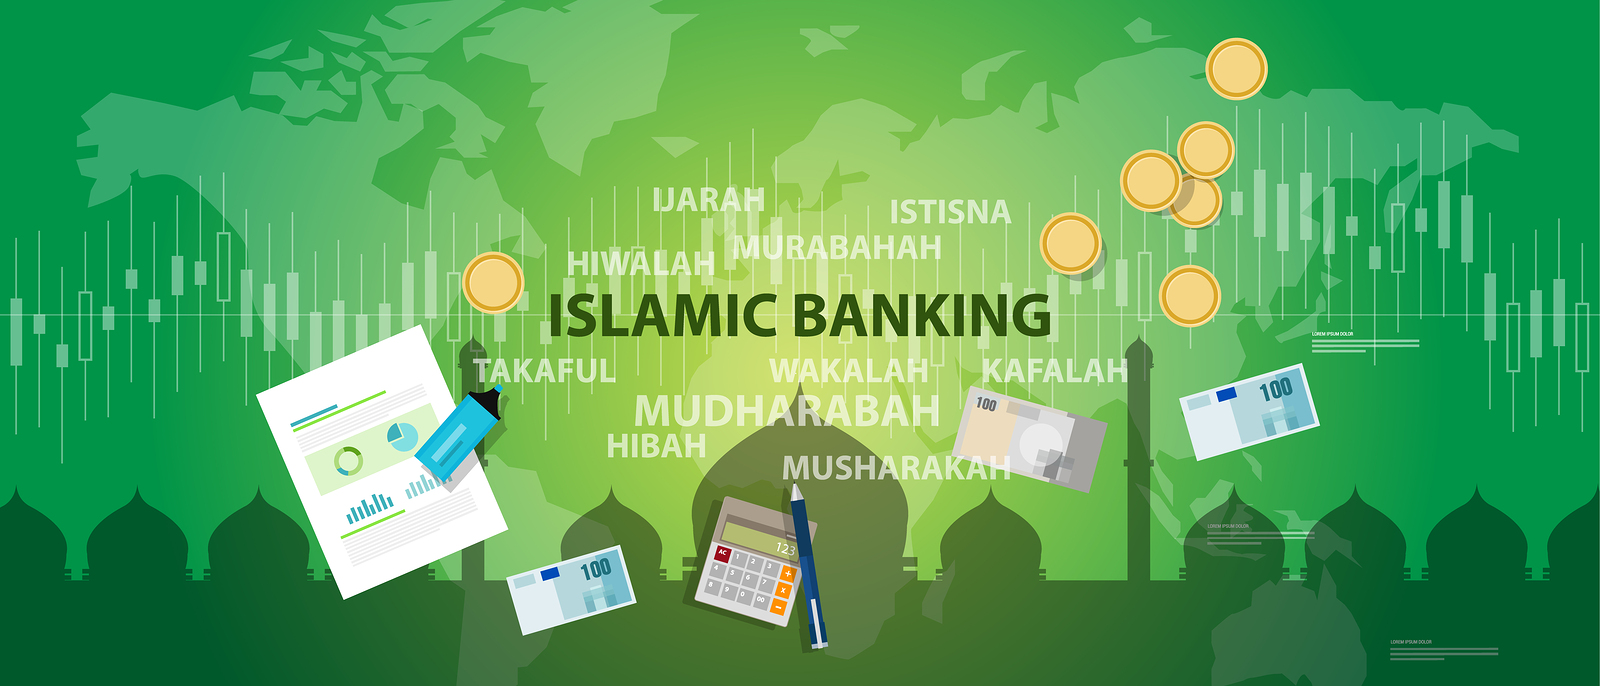 islamic banking sharia islam economy finance money management transaction concept